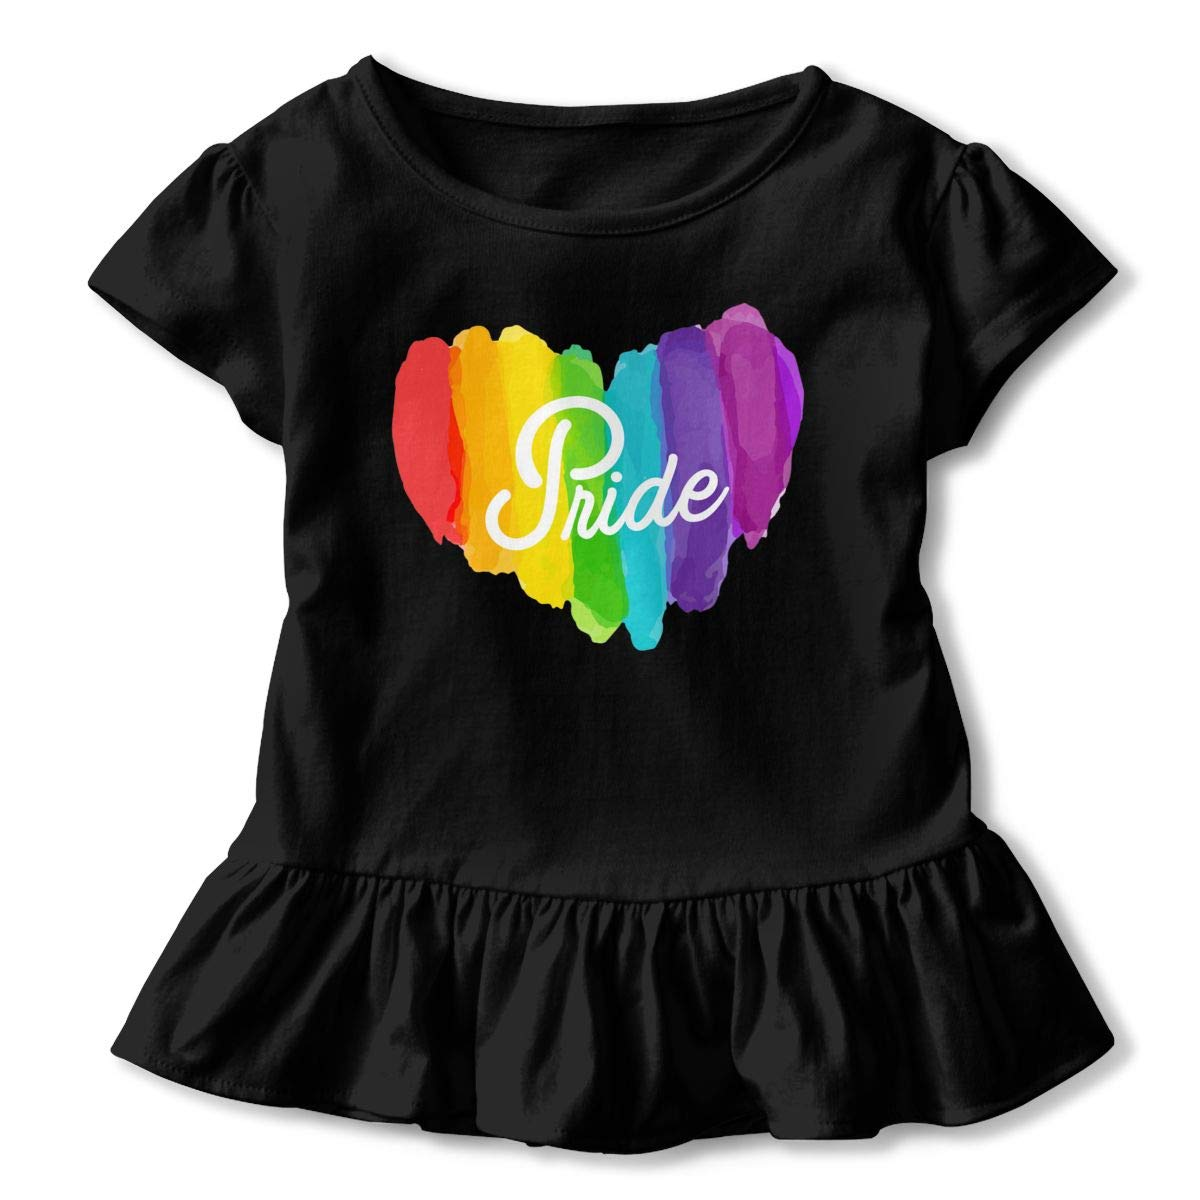 Rainbow Paint Toddler Baby Girls Cotton Ruffle Short Sleeve Top Basic T-Shirt 2-6T